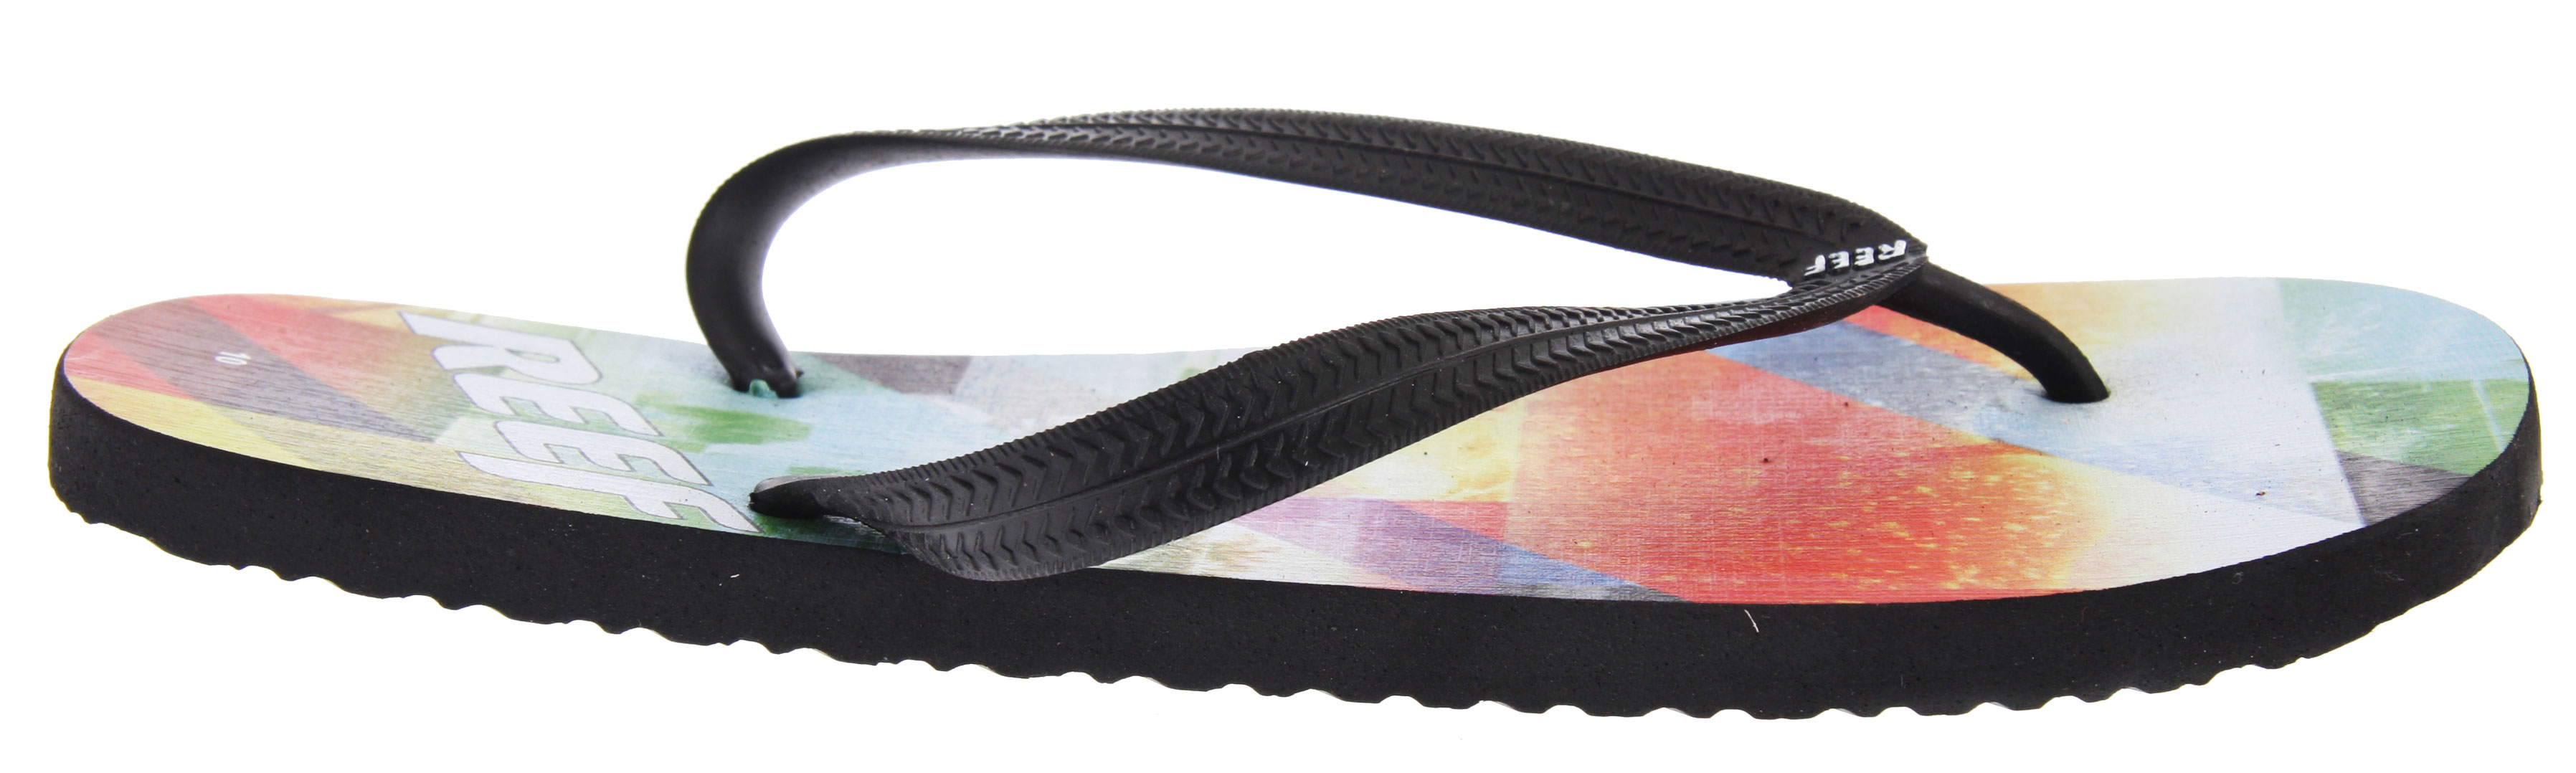 Surf Reef Trinidad Sandals - $6.95